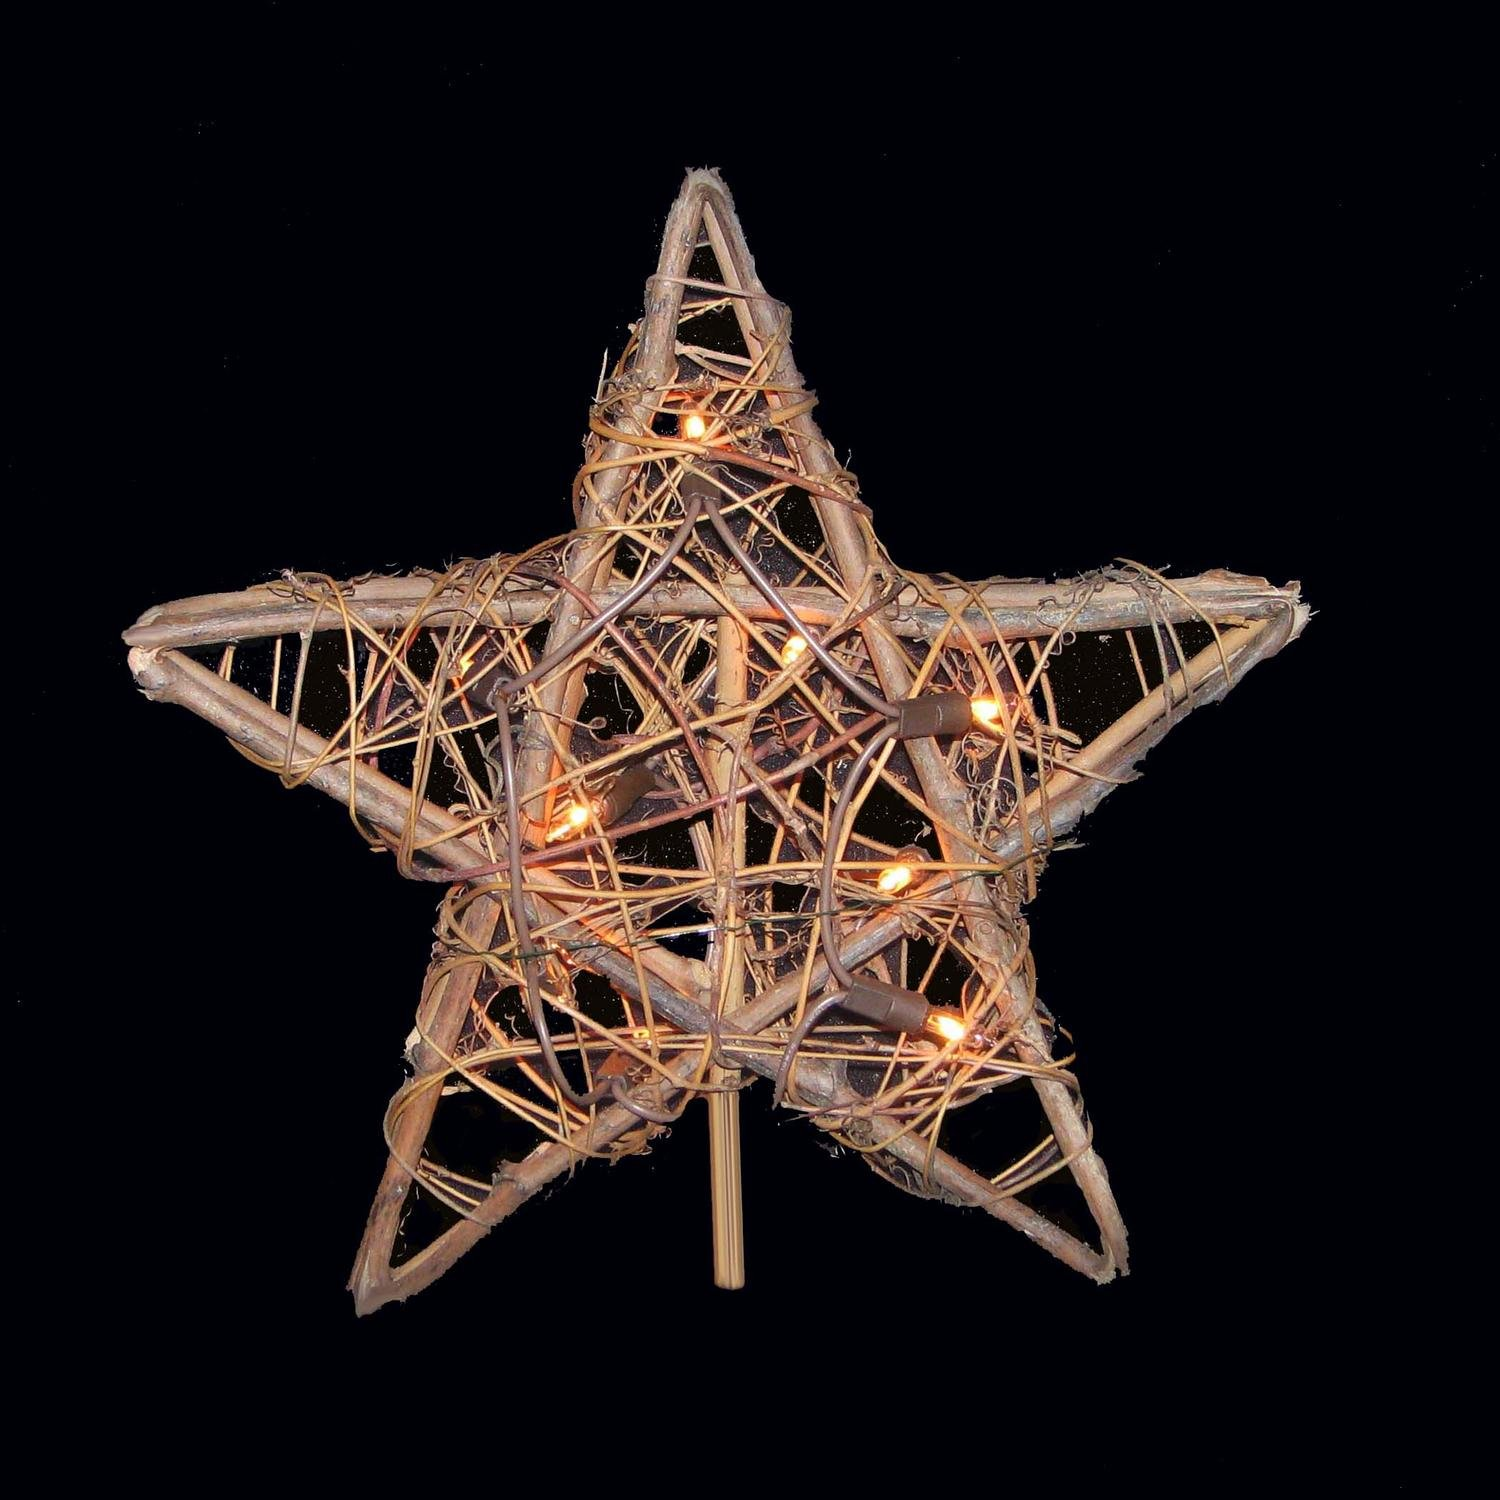 Amazoncom Natural Rattan 3D Star Christmas Tree Topper  Clear